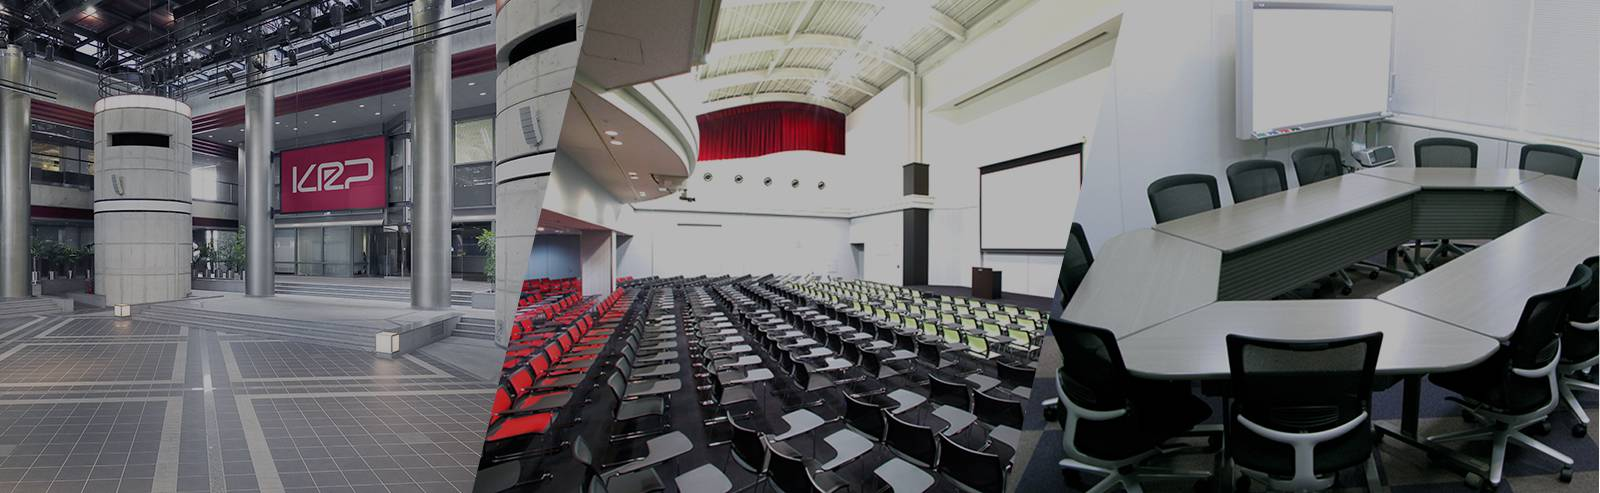 Room sizes range from 30m2 to 365m2, ready for conferences and event of various scales.